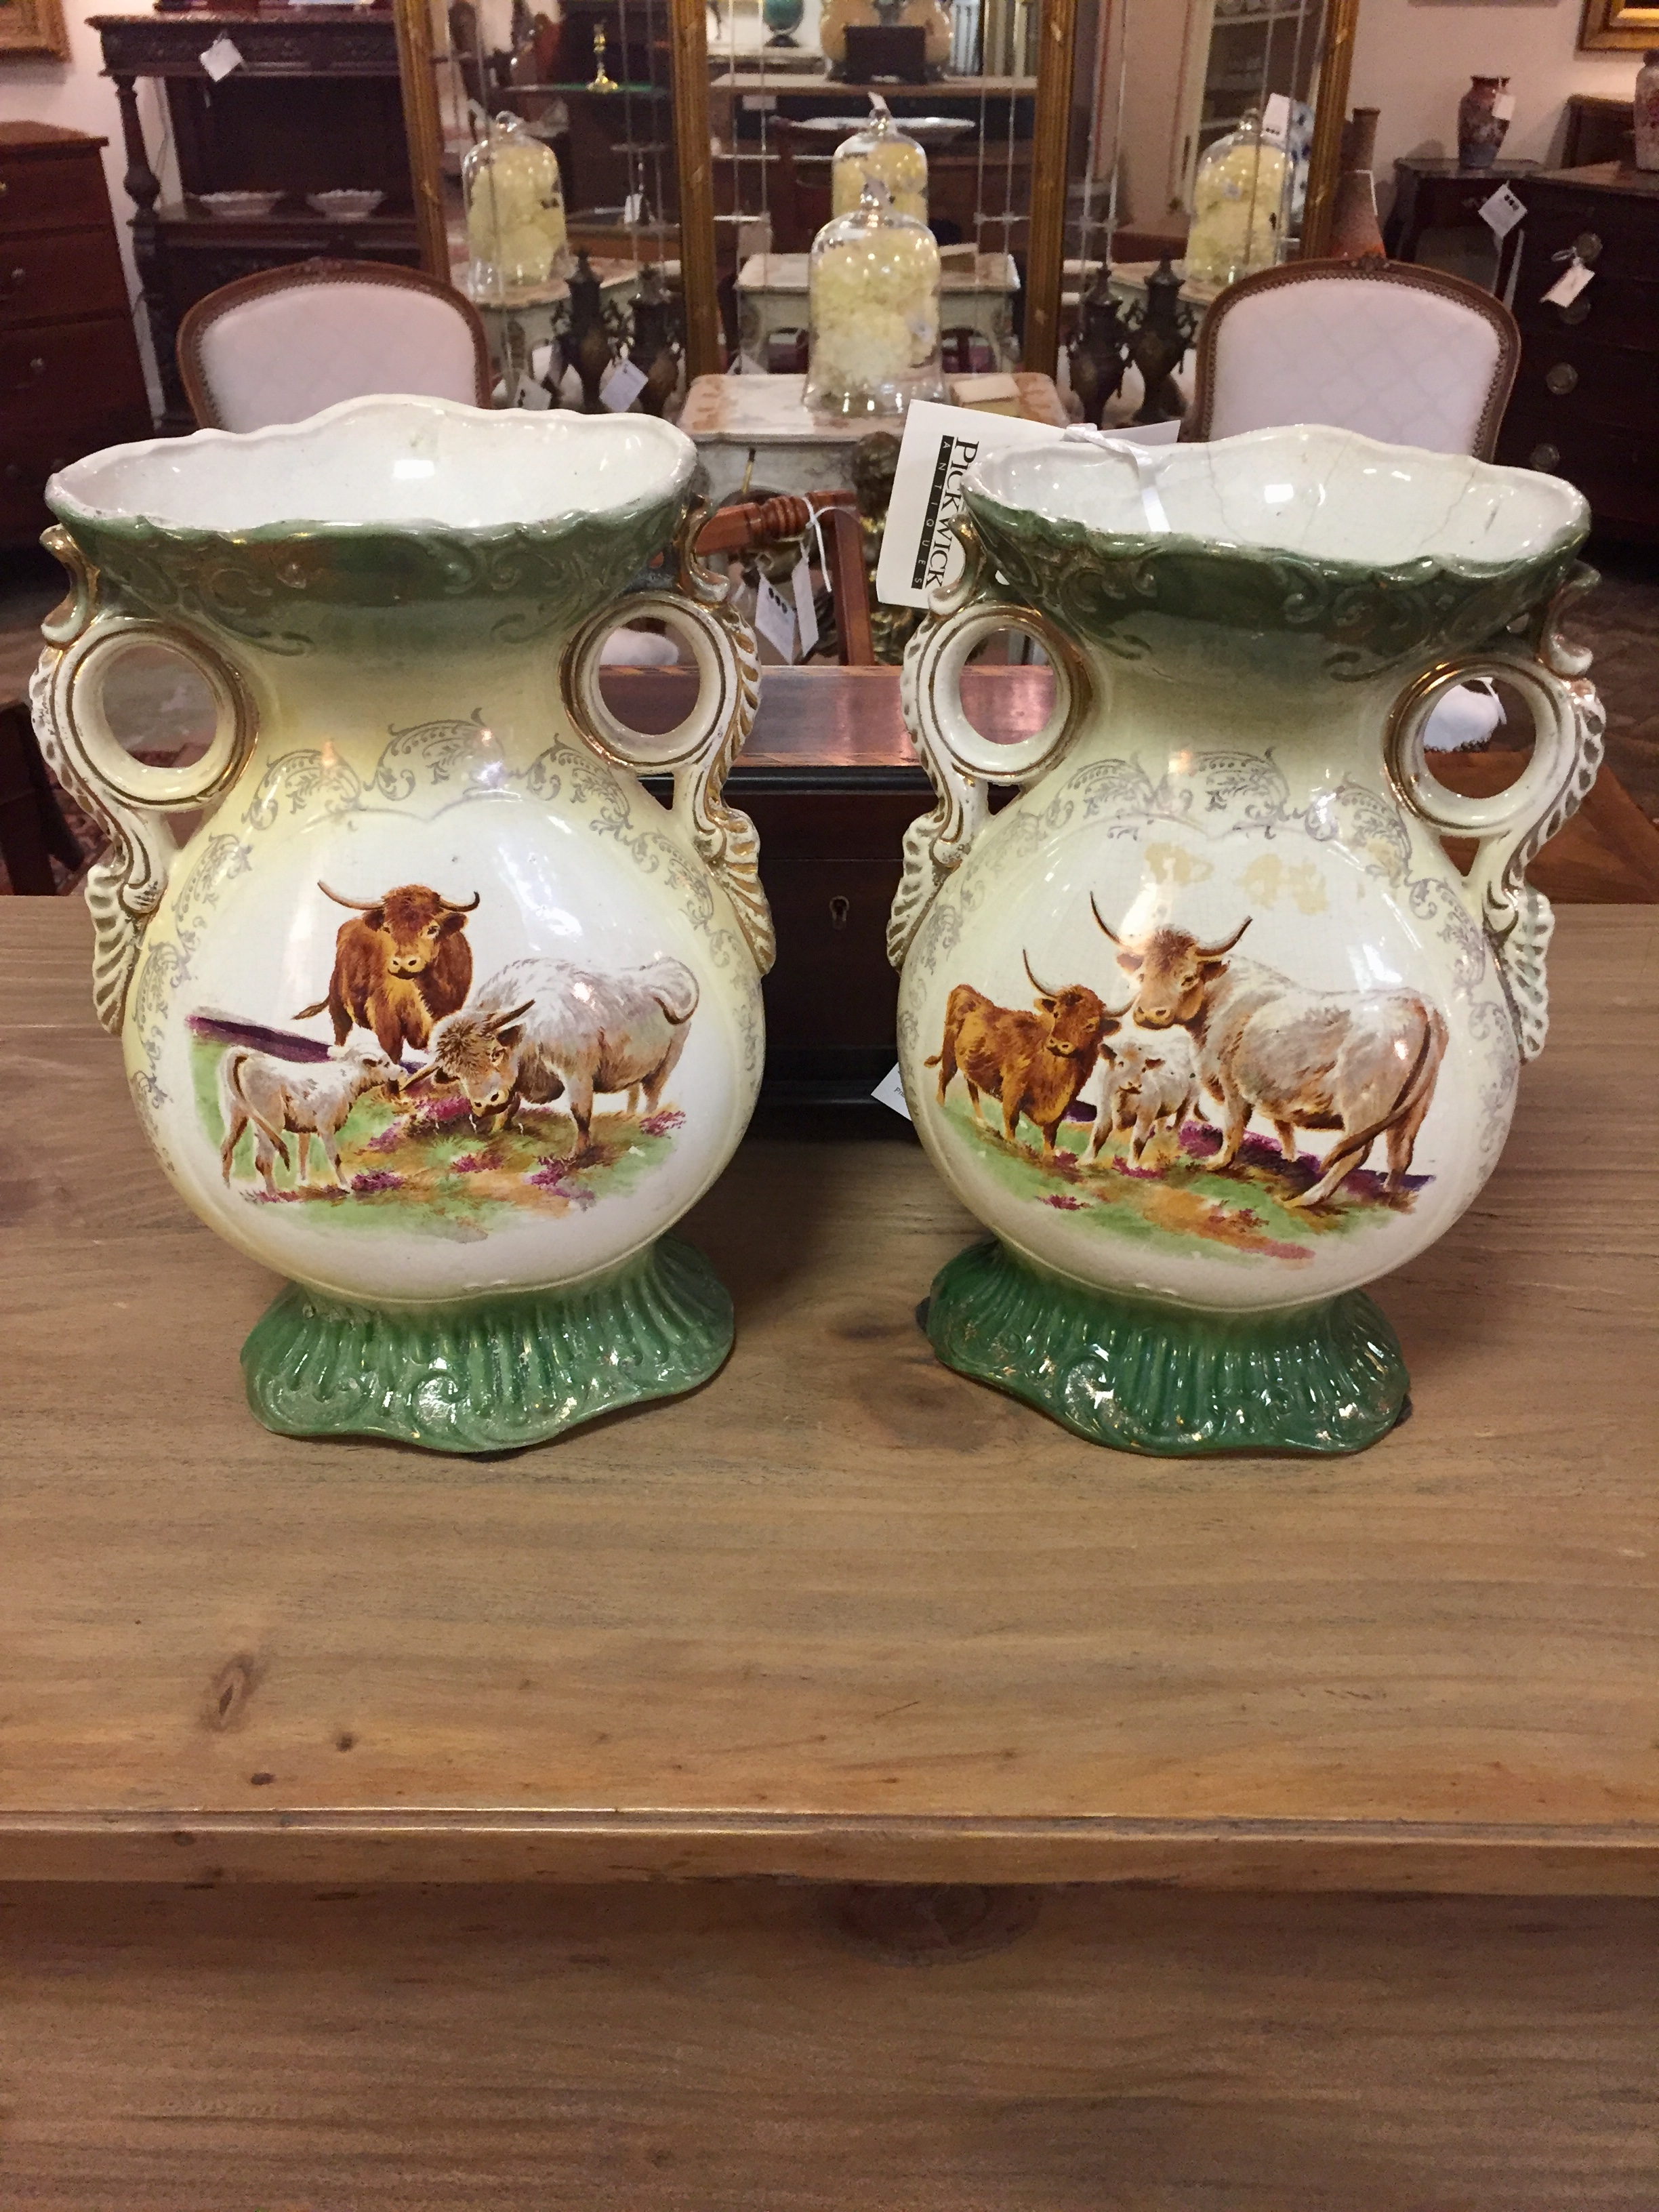 A Pair of Double Handled Porcelain Vases with Cow Decorations